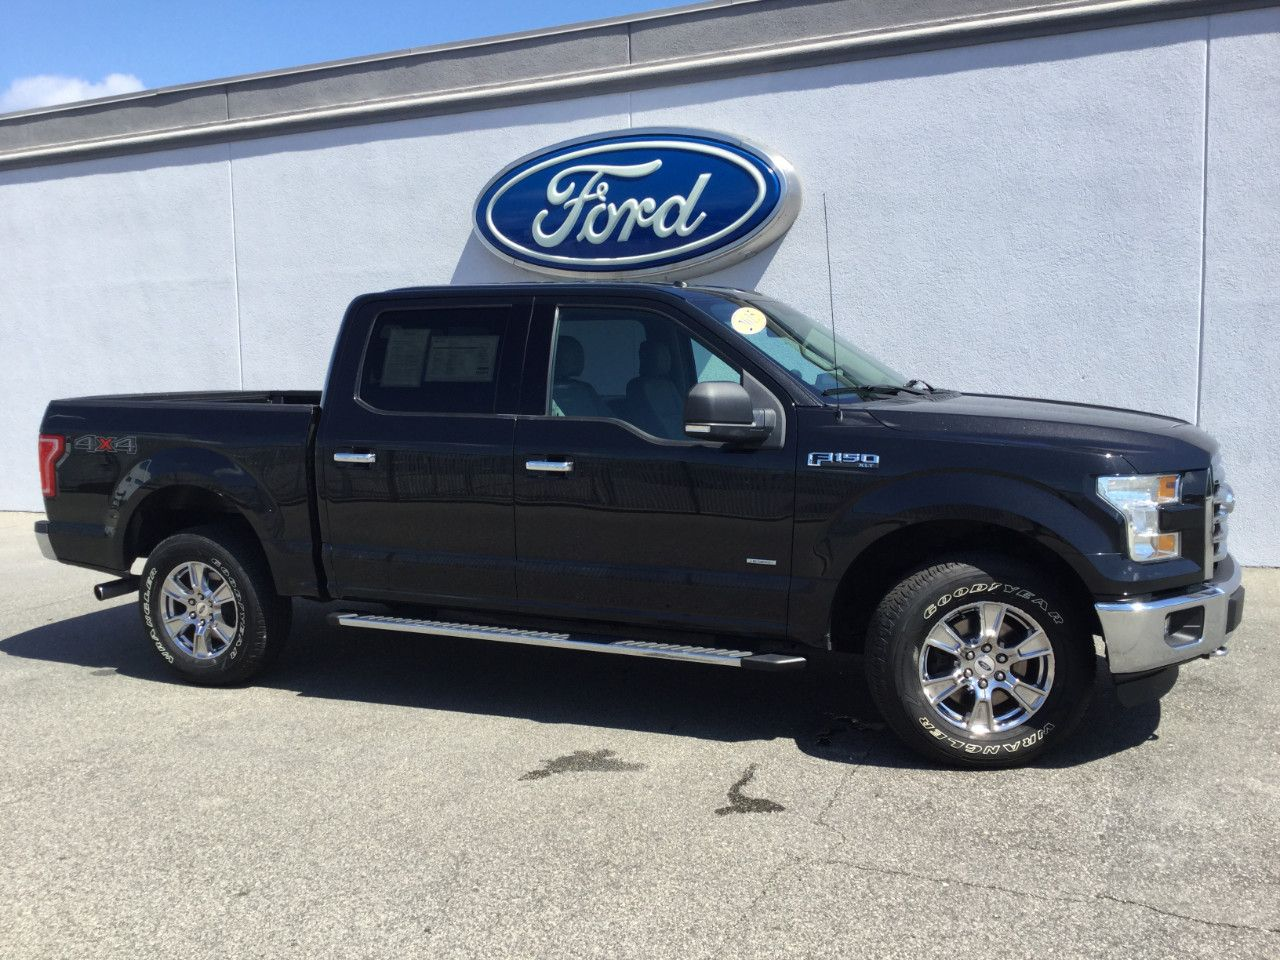 393 New Ford Cars, SUVs in Fayetteville Ford, Used ford, 4x4